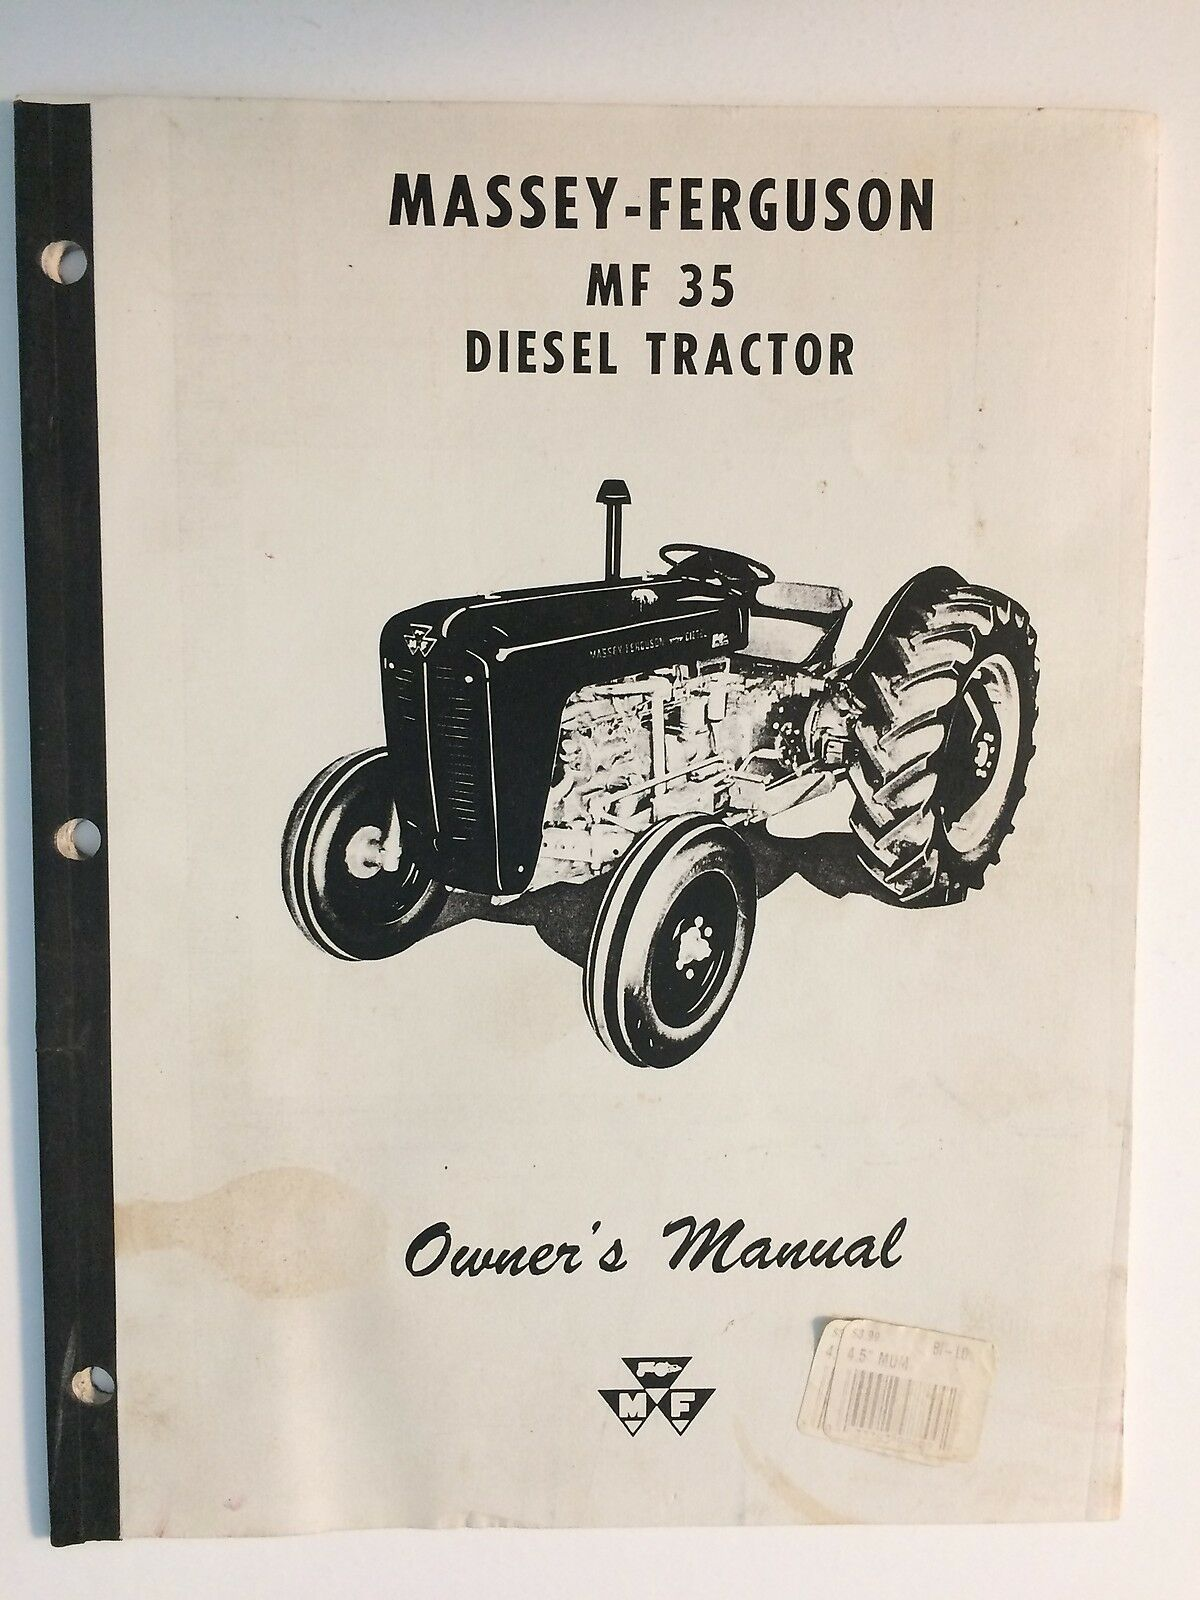 Massey-Ferguson MF 35 Diesel Tractor Operator's Owner's Instruction Manual  Book 1 of 1Only 1 available See More